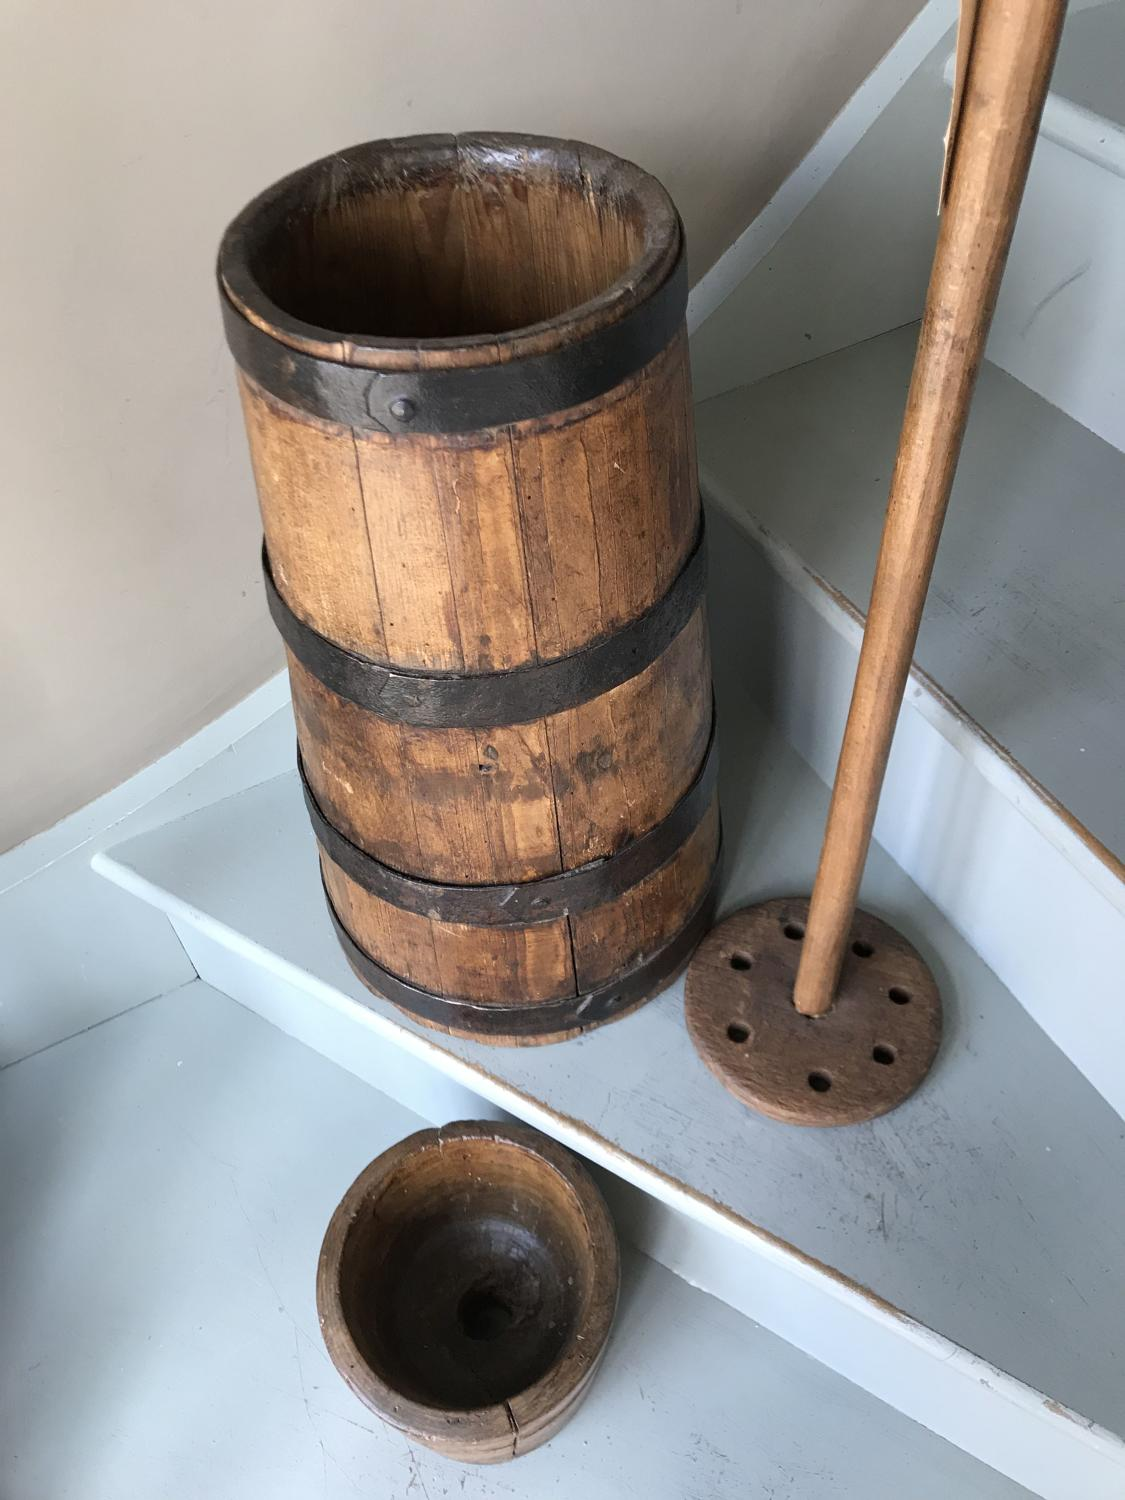 Antique Plunger Butter churn